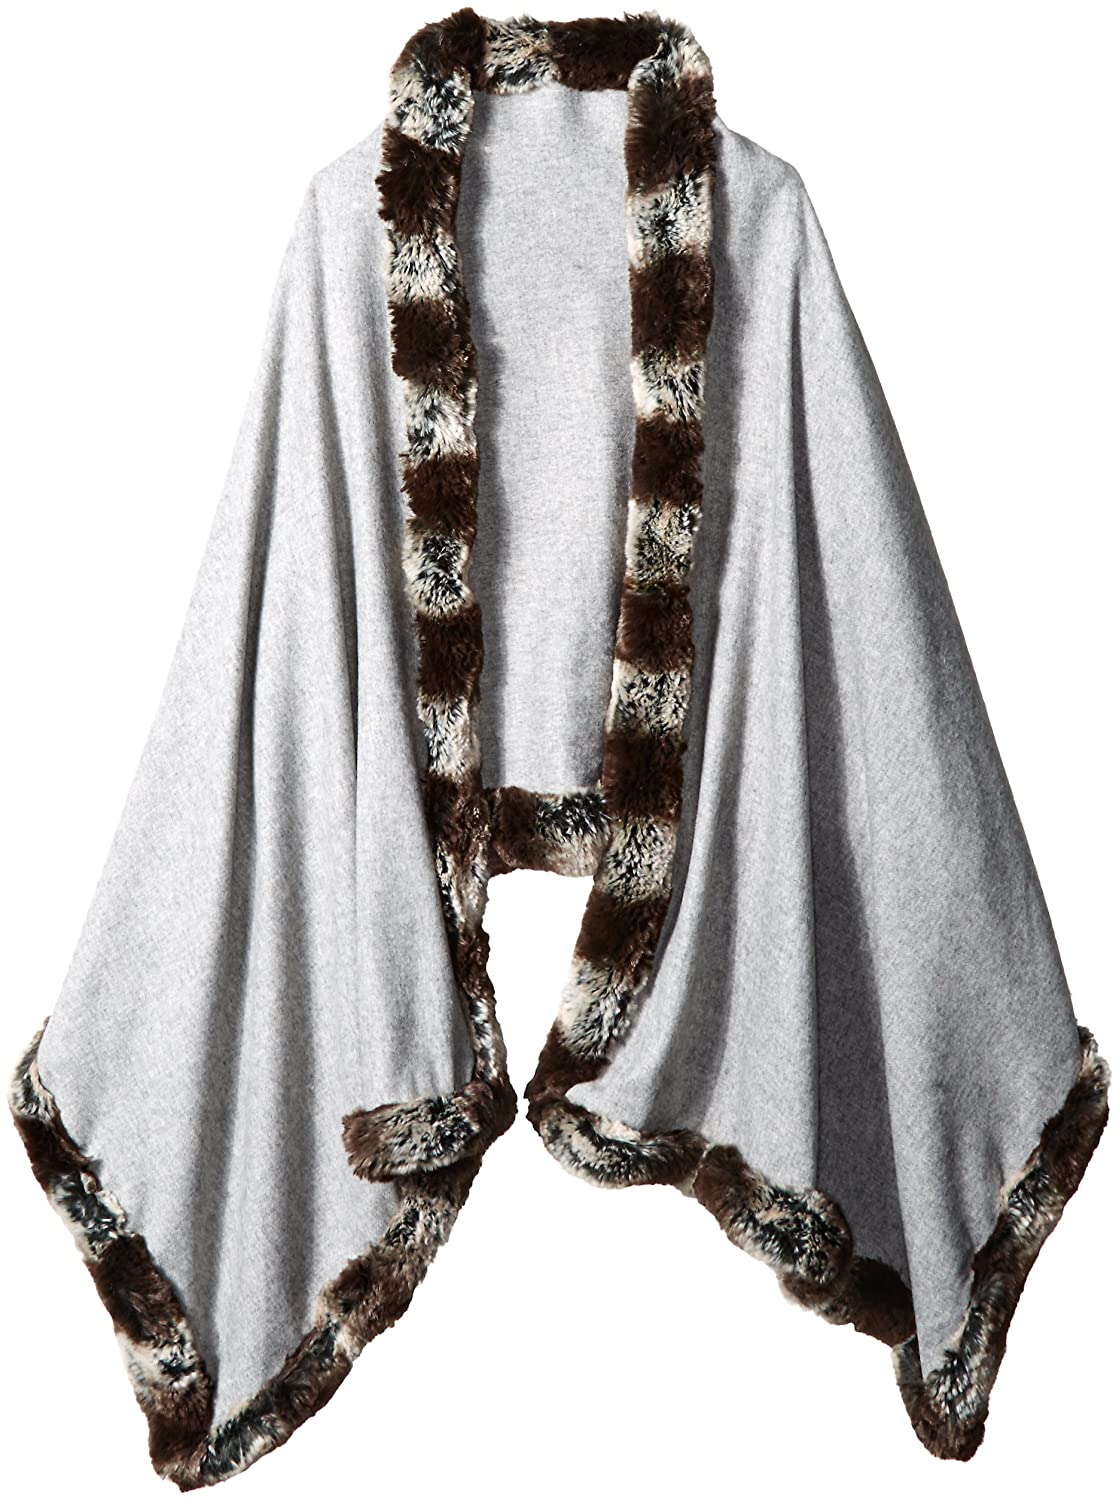 BADGLEY MISCHKA Women's Large Woven Wrap with Faux Chinchilla Trim Grey One Size SCW-3958-BMI.01